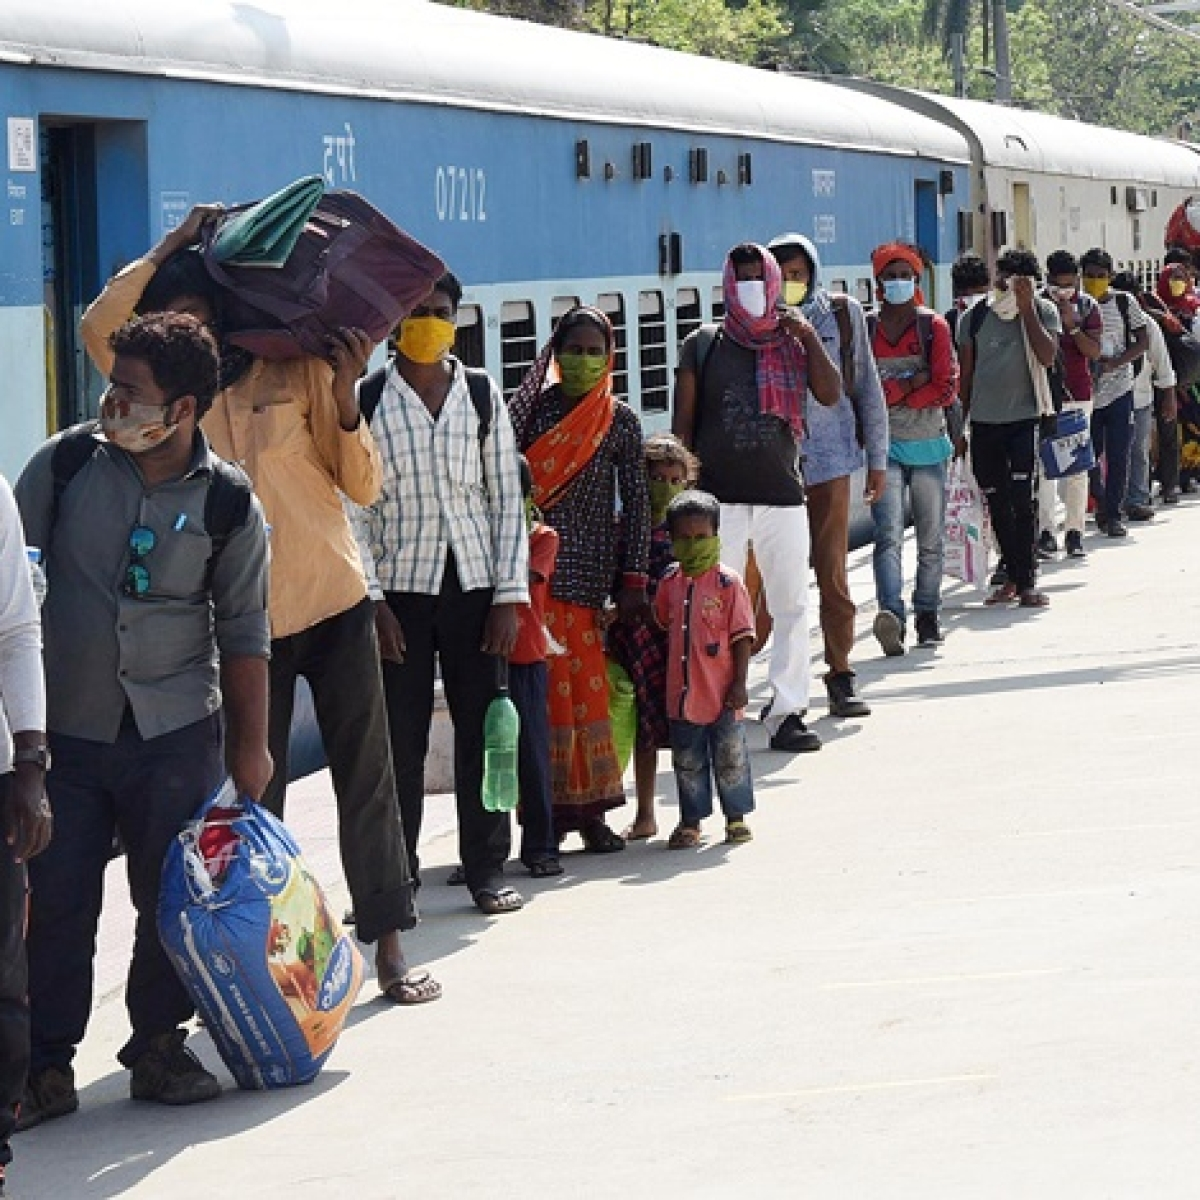 Indian Railways to resume services of 200 non-AC trains from June 1